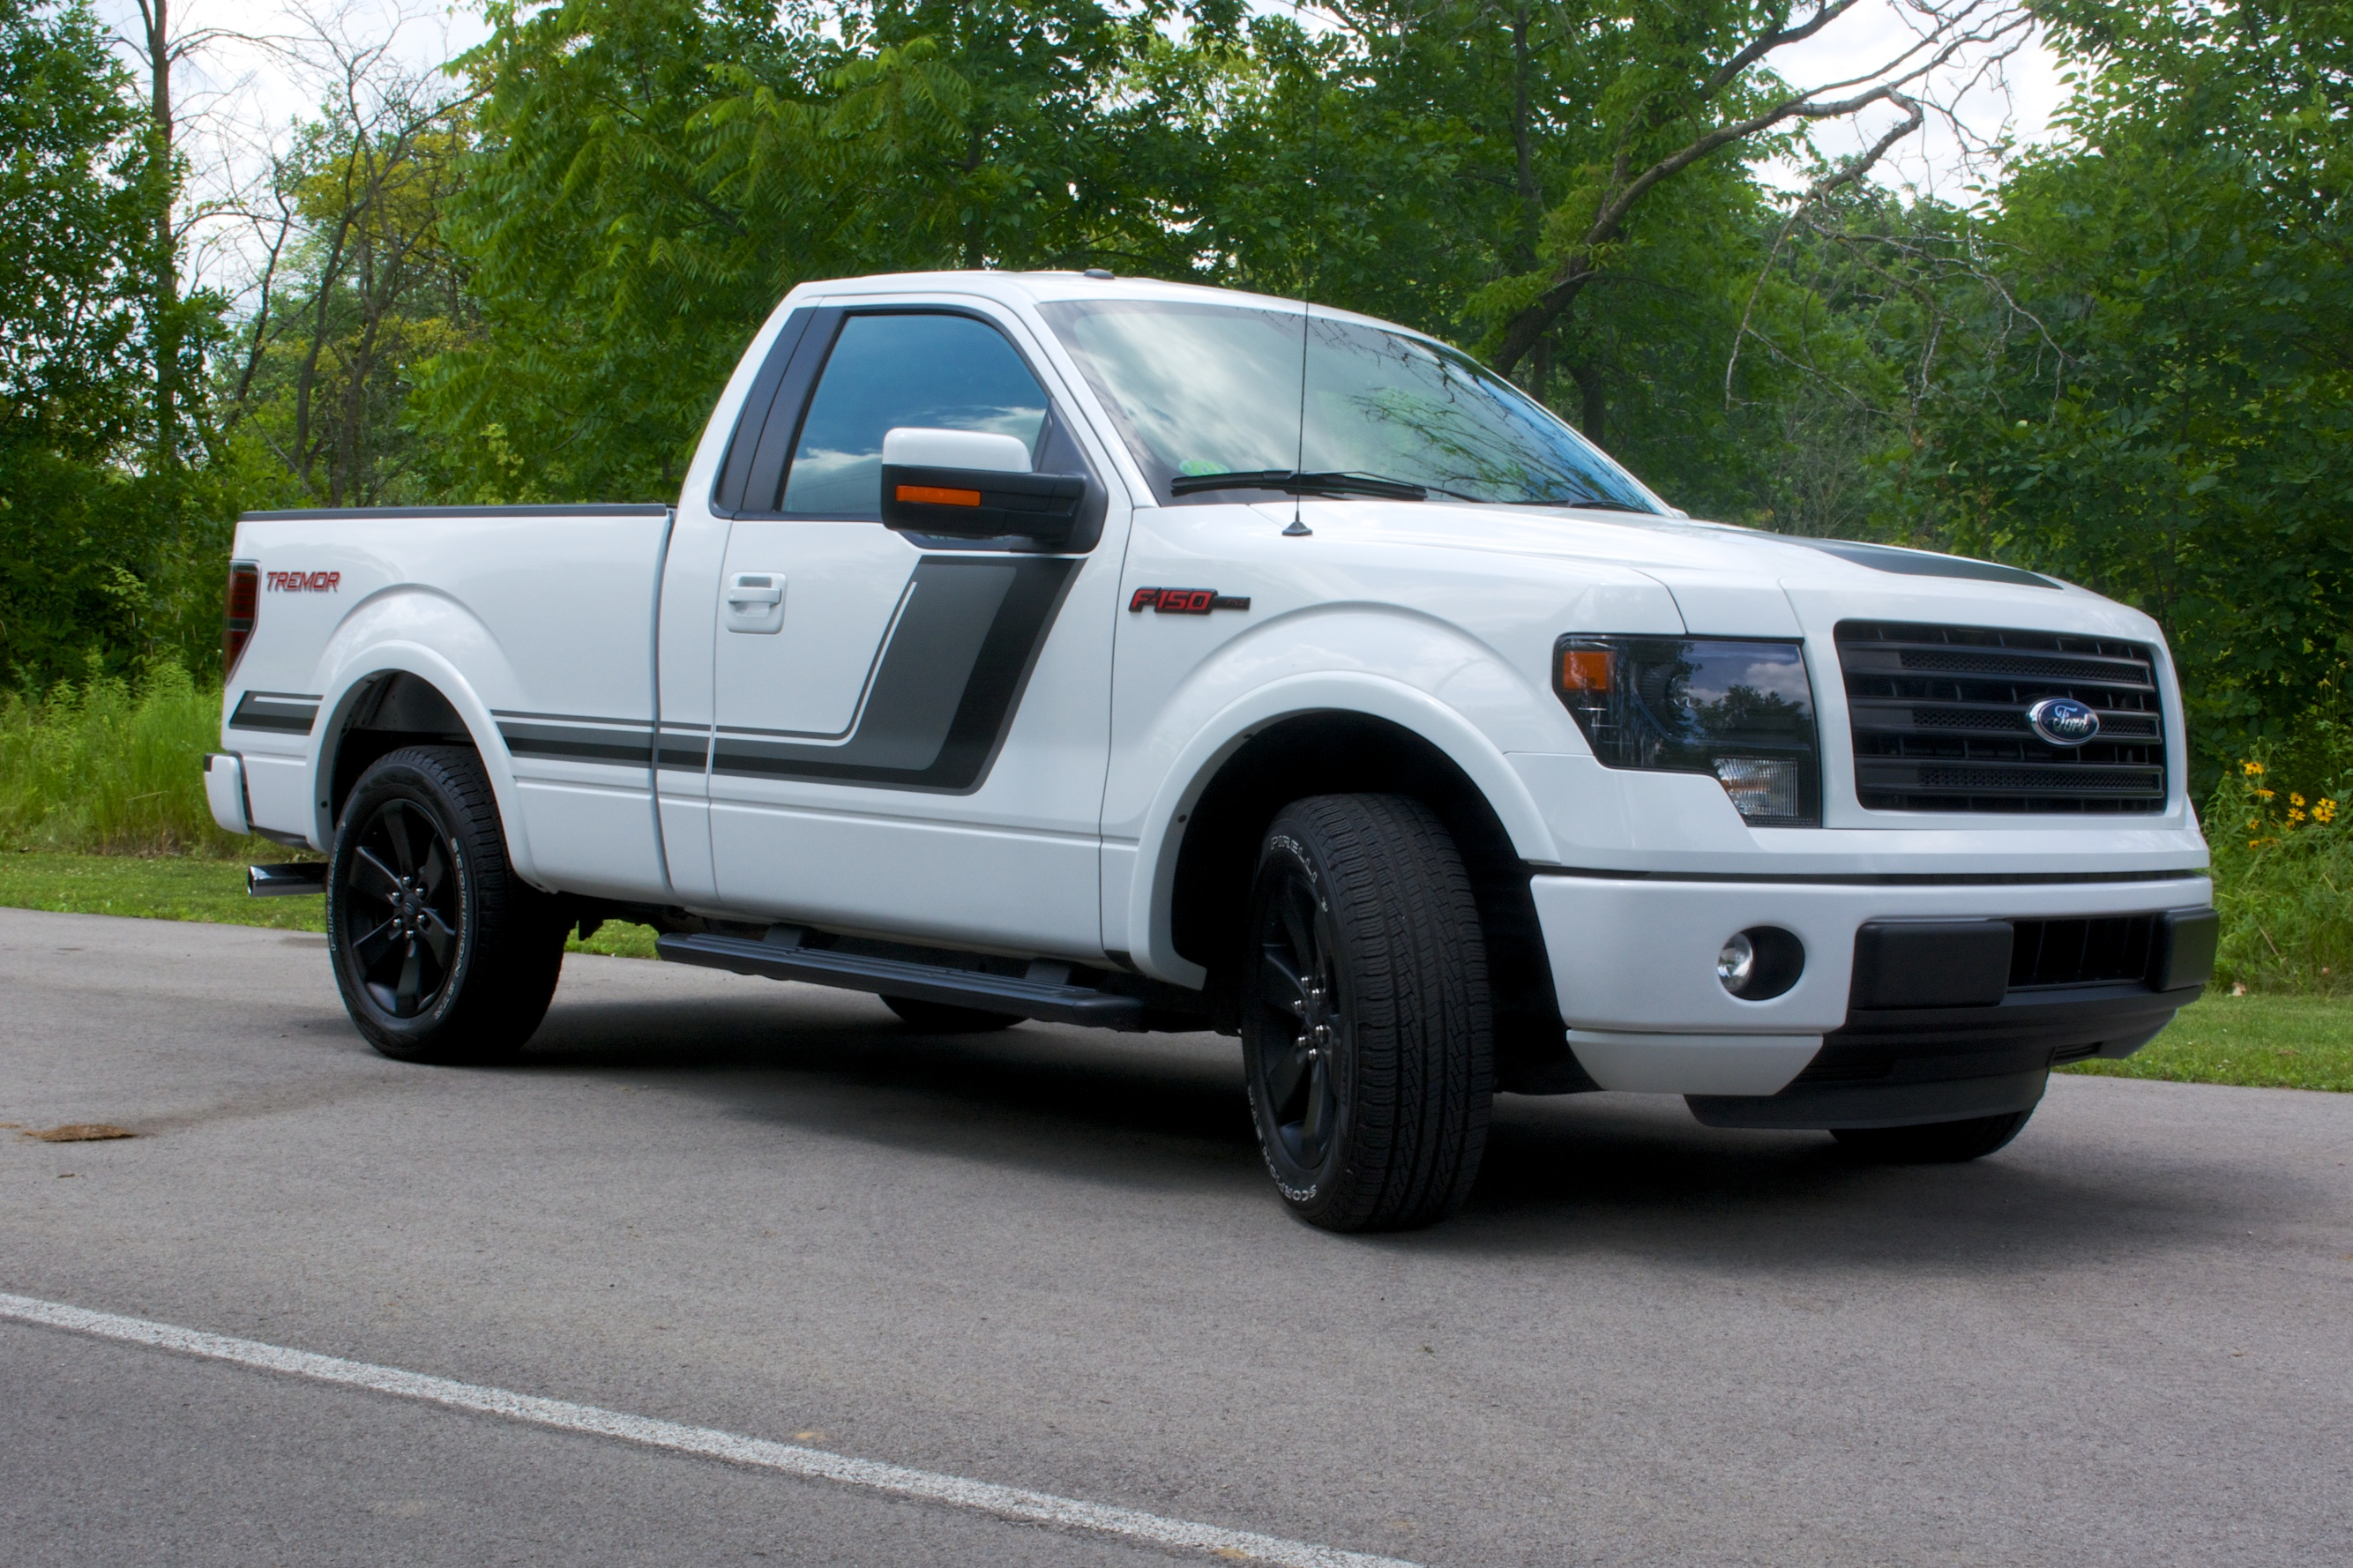 2014 ford f 150 vs 2014 ford f 250 compare reviews html autos weblog. Black Bedroom Furniture Sets. Home Design Ideas